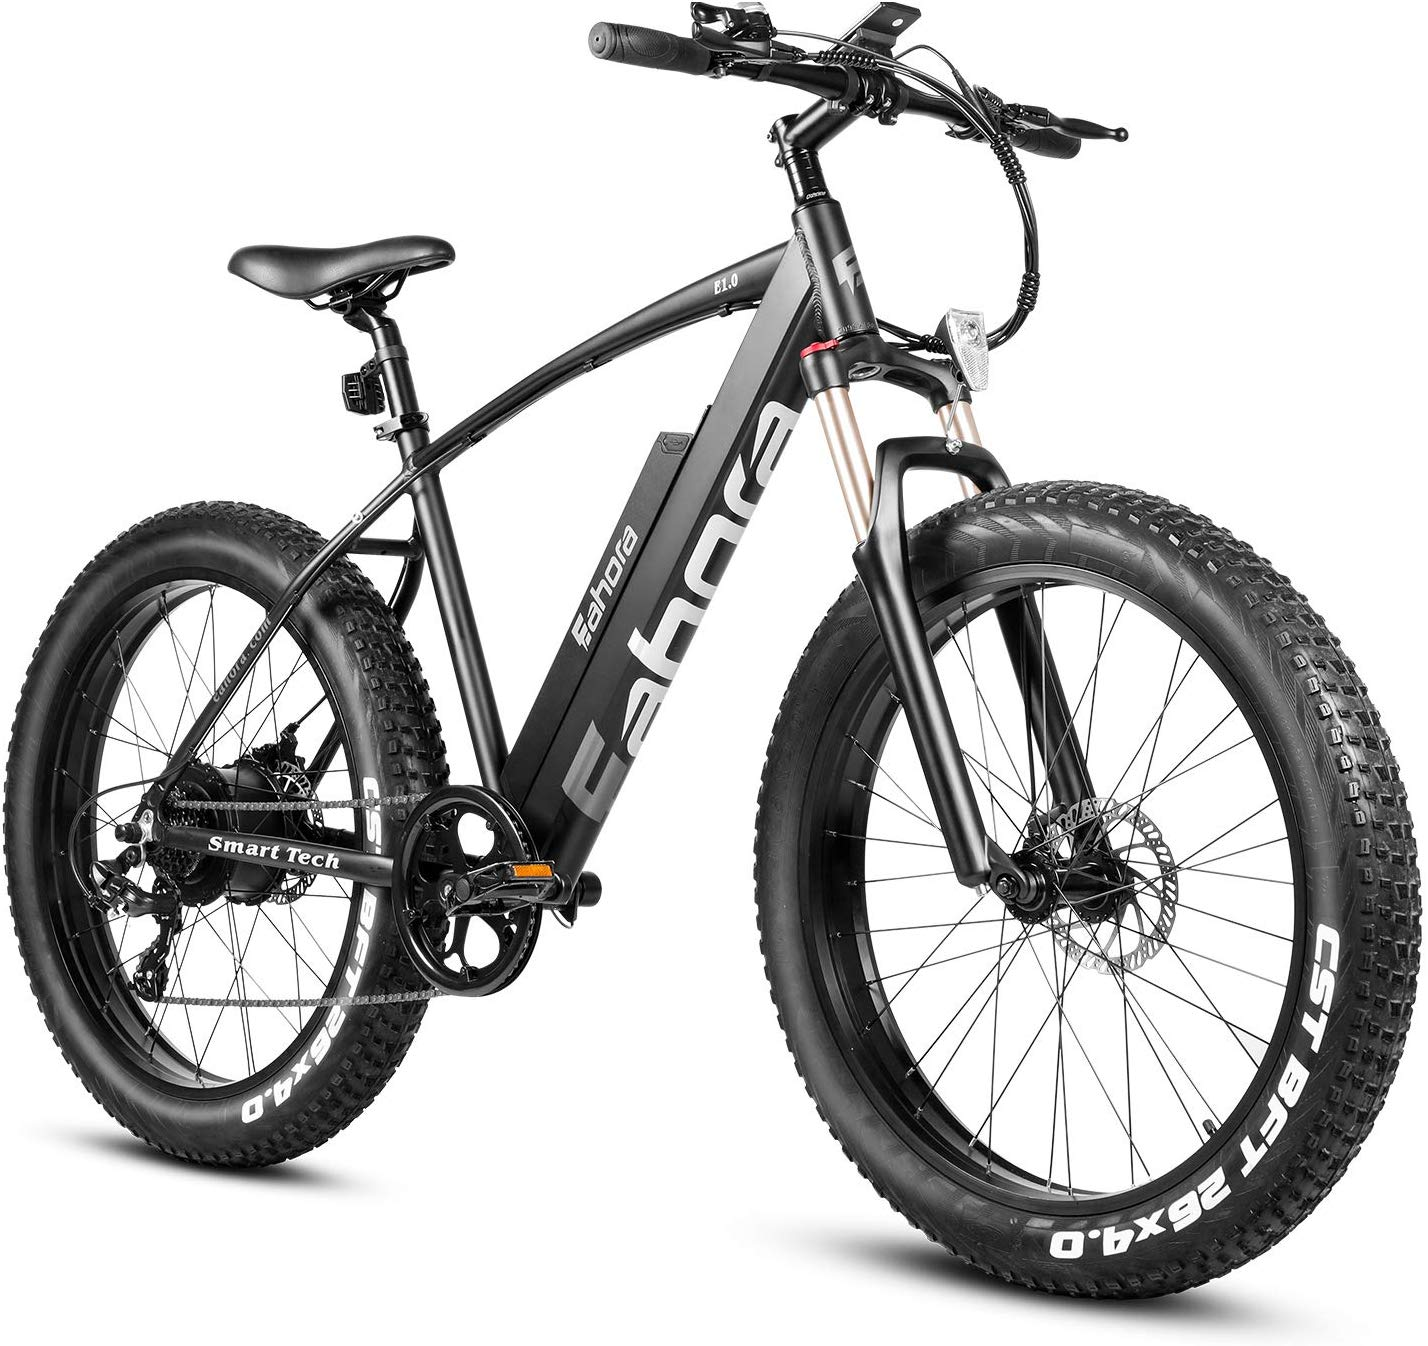 Eahora 500W Electric Mountain Bike